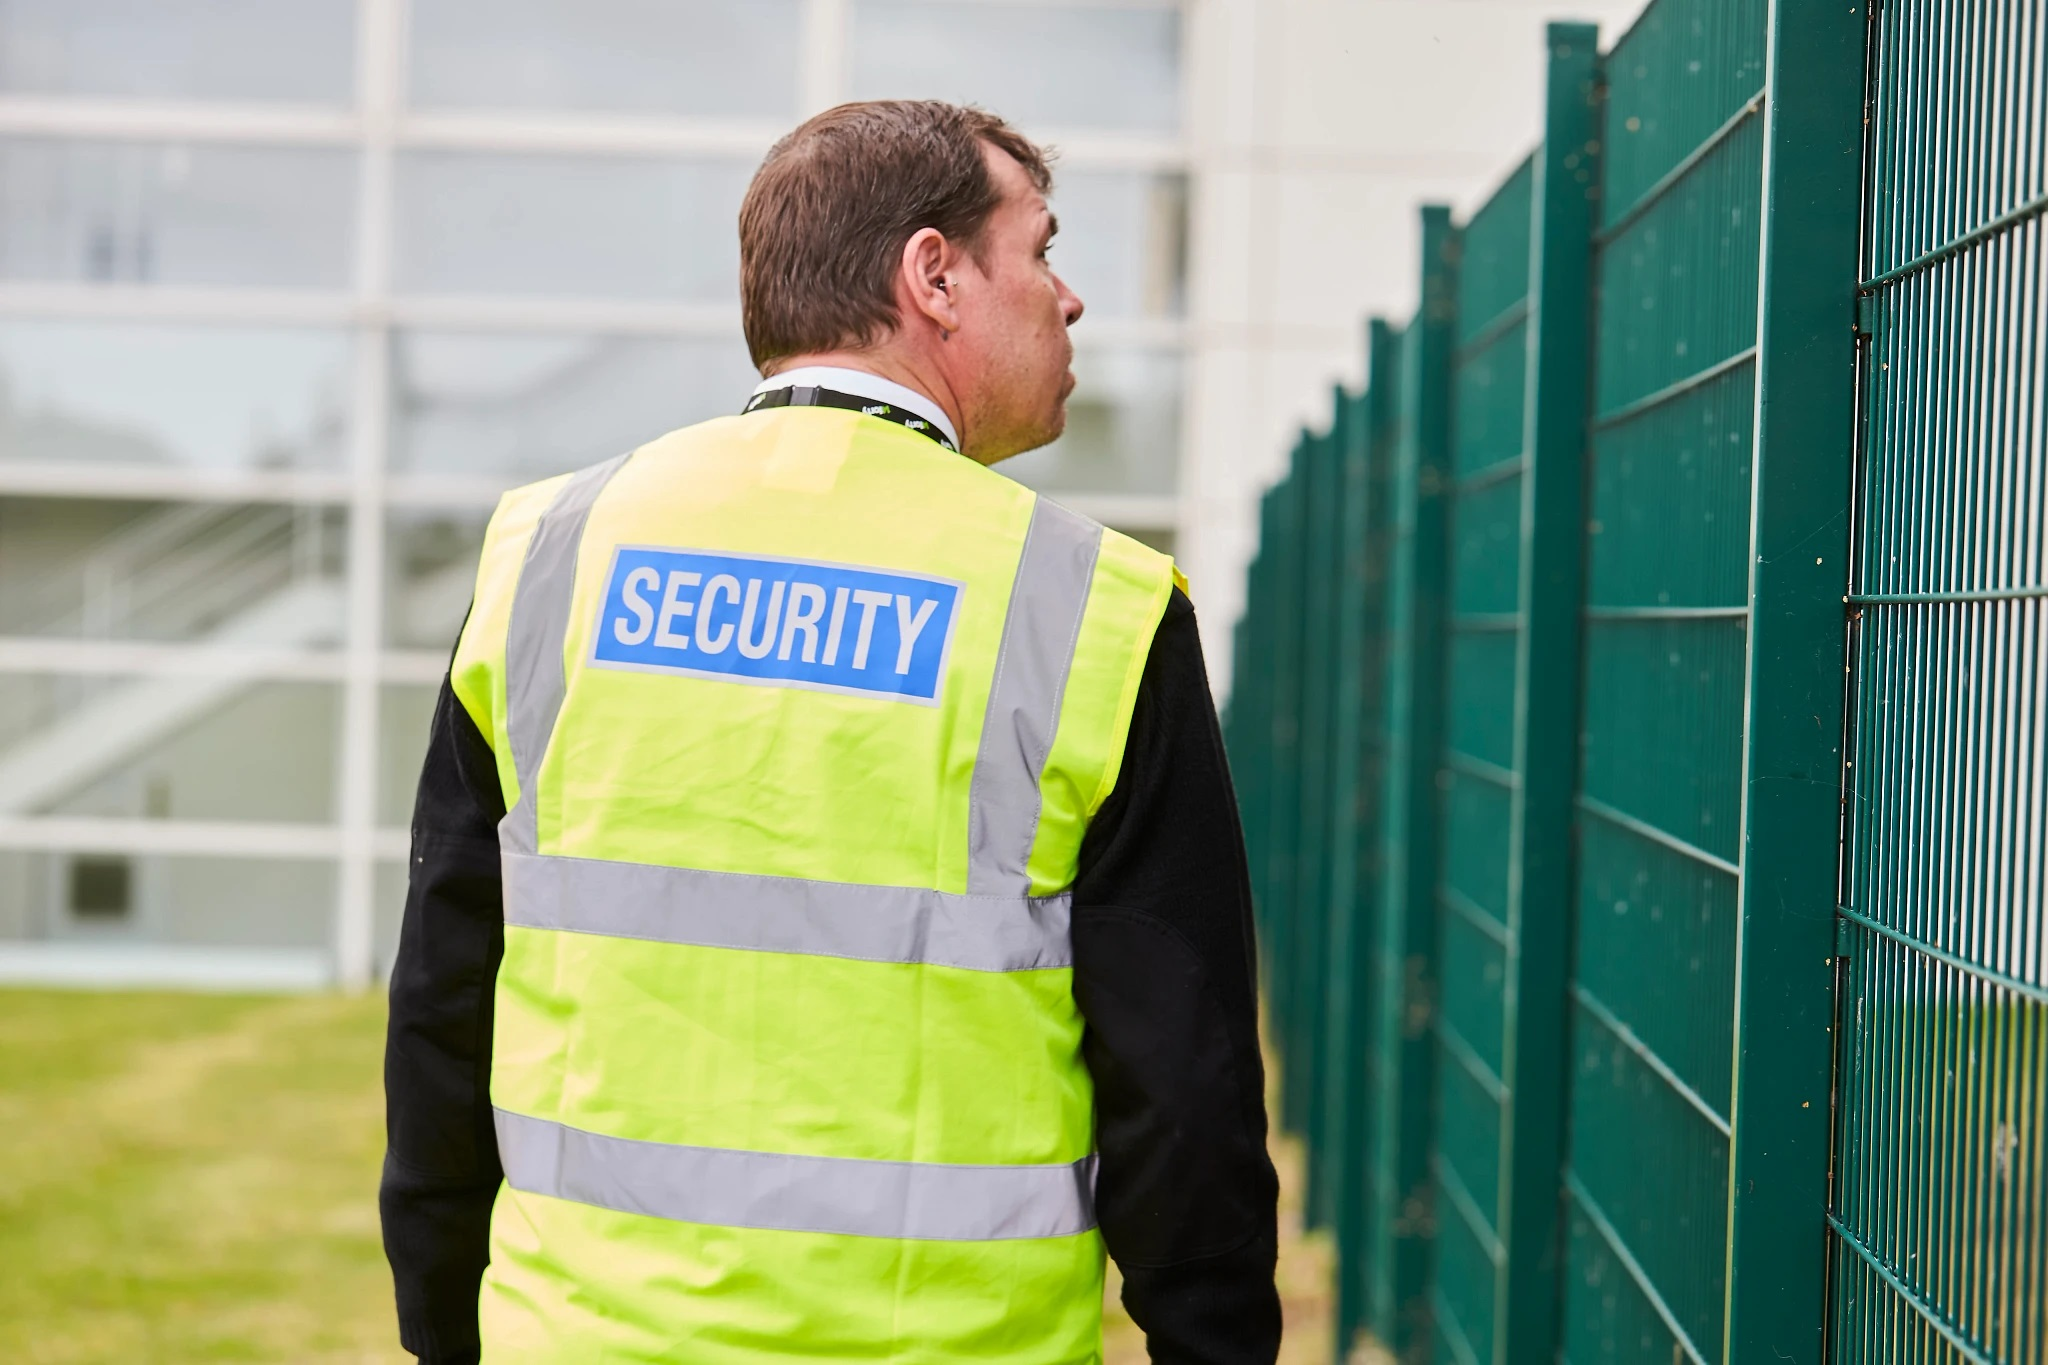 Top ten security tips to protect vacant and minimally occupied buildings